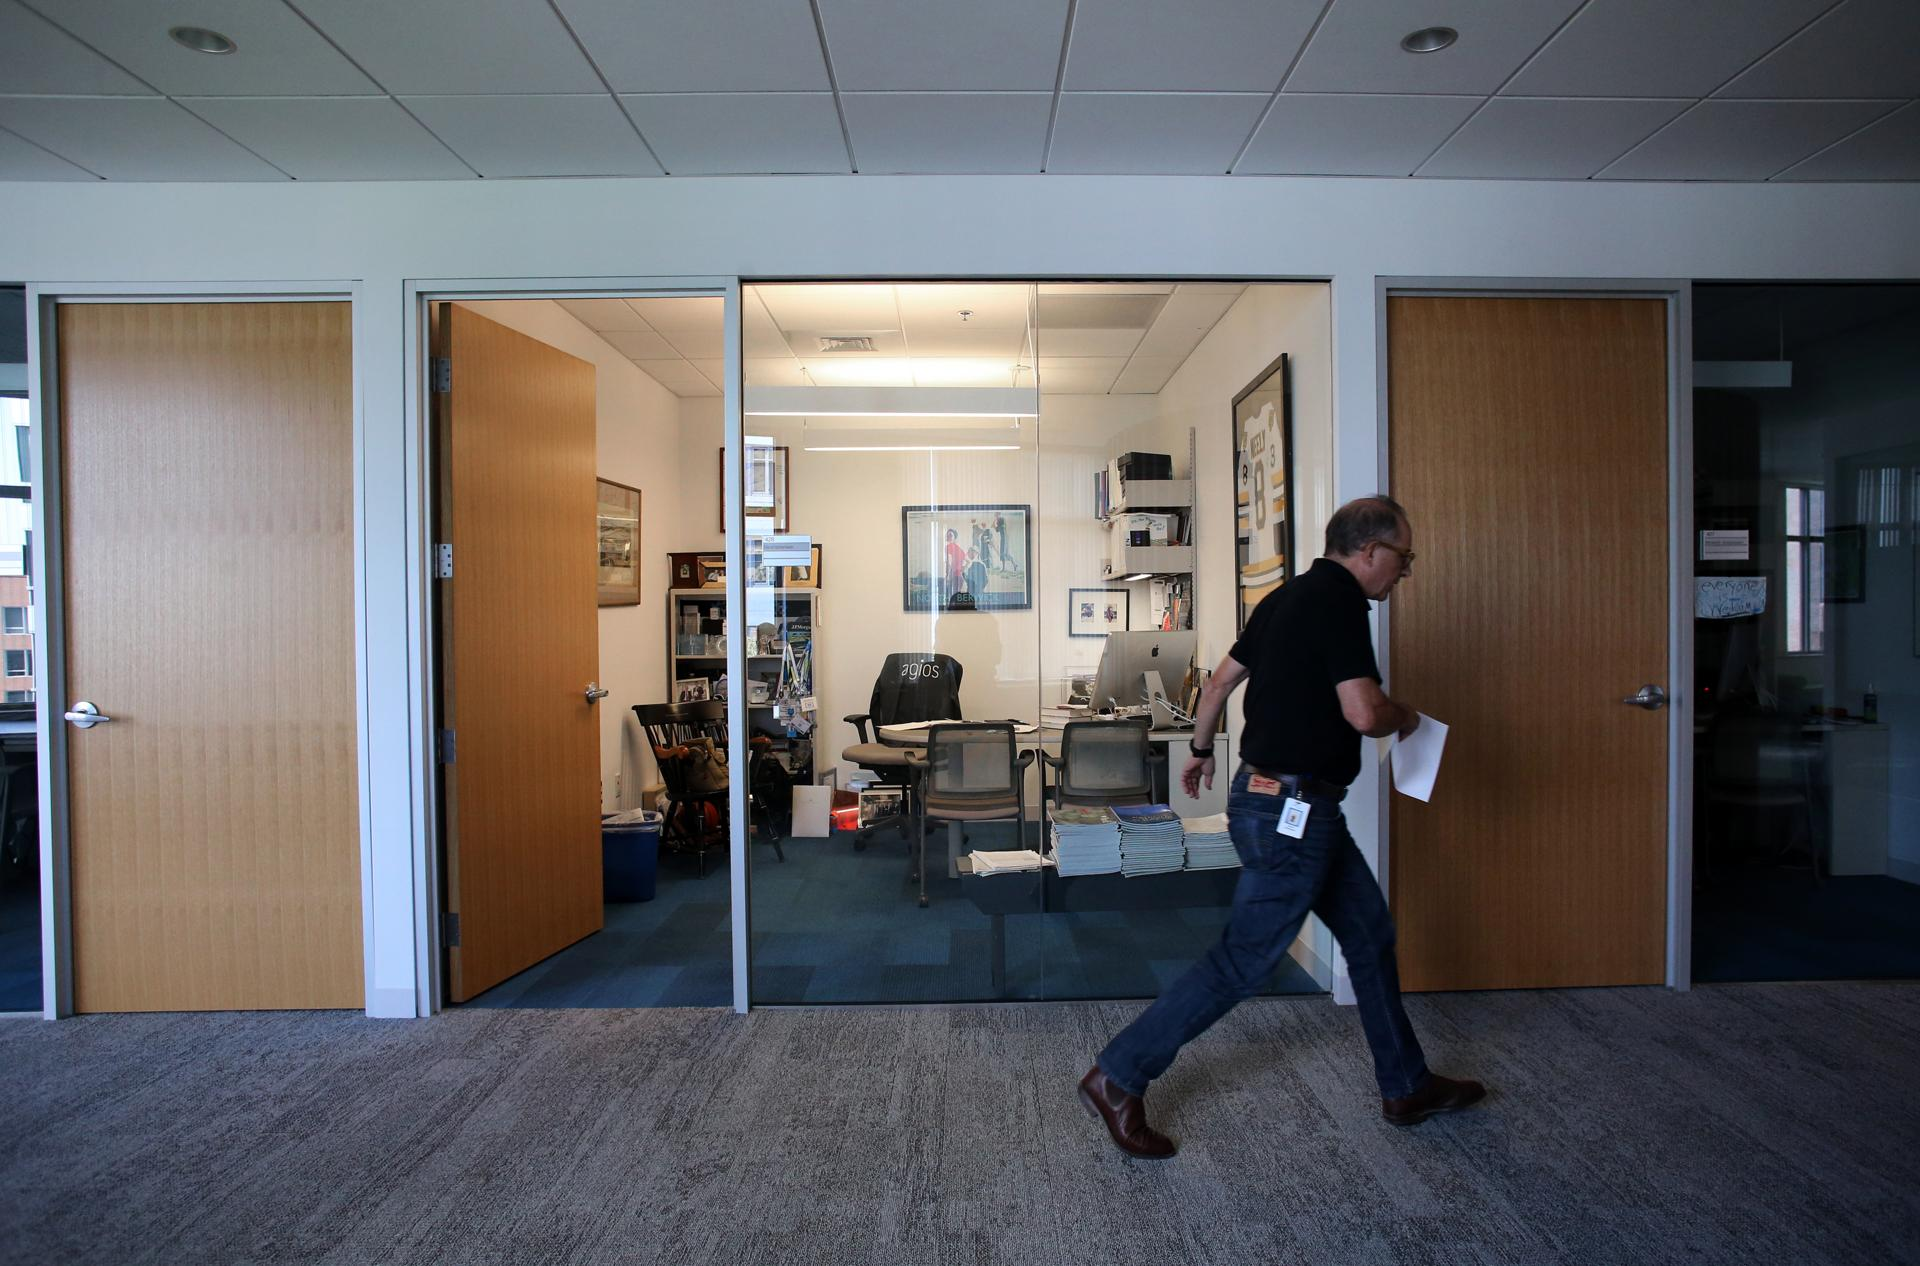 Cambridge, MA - July 10, 2018: CEO David Schenkein passes his office at Agios Pharmaceuticals Inc. in Cambridge, MA on July 10, 2018. (Craig F. Walker/Globe Staff) section: business reporter: